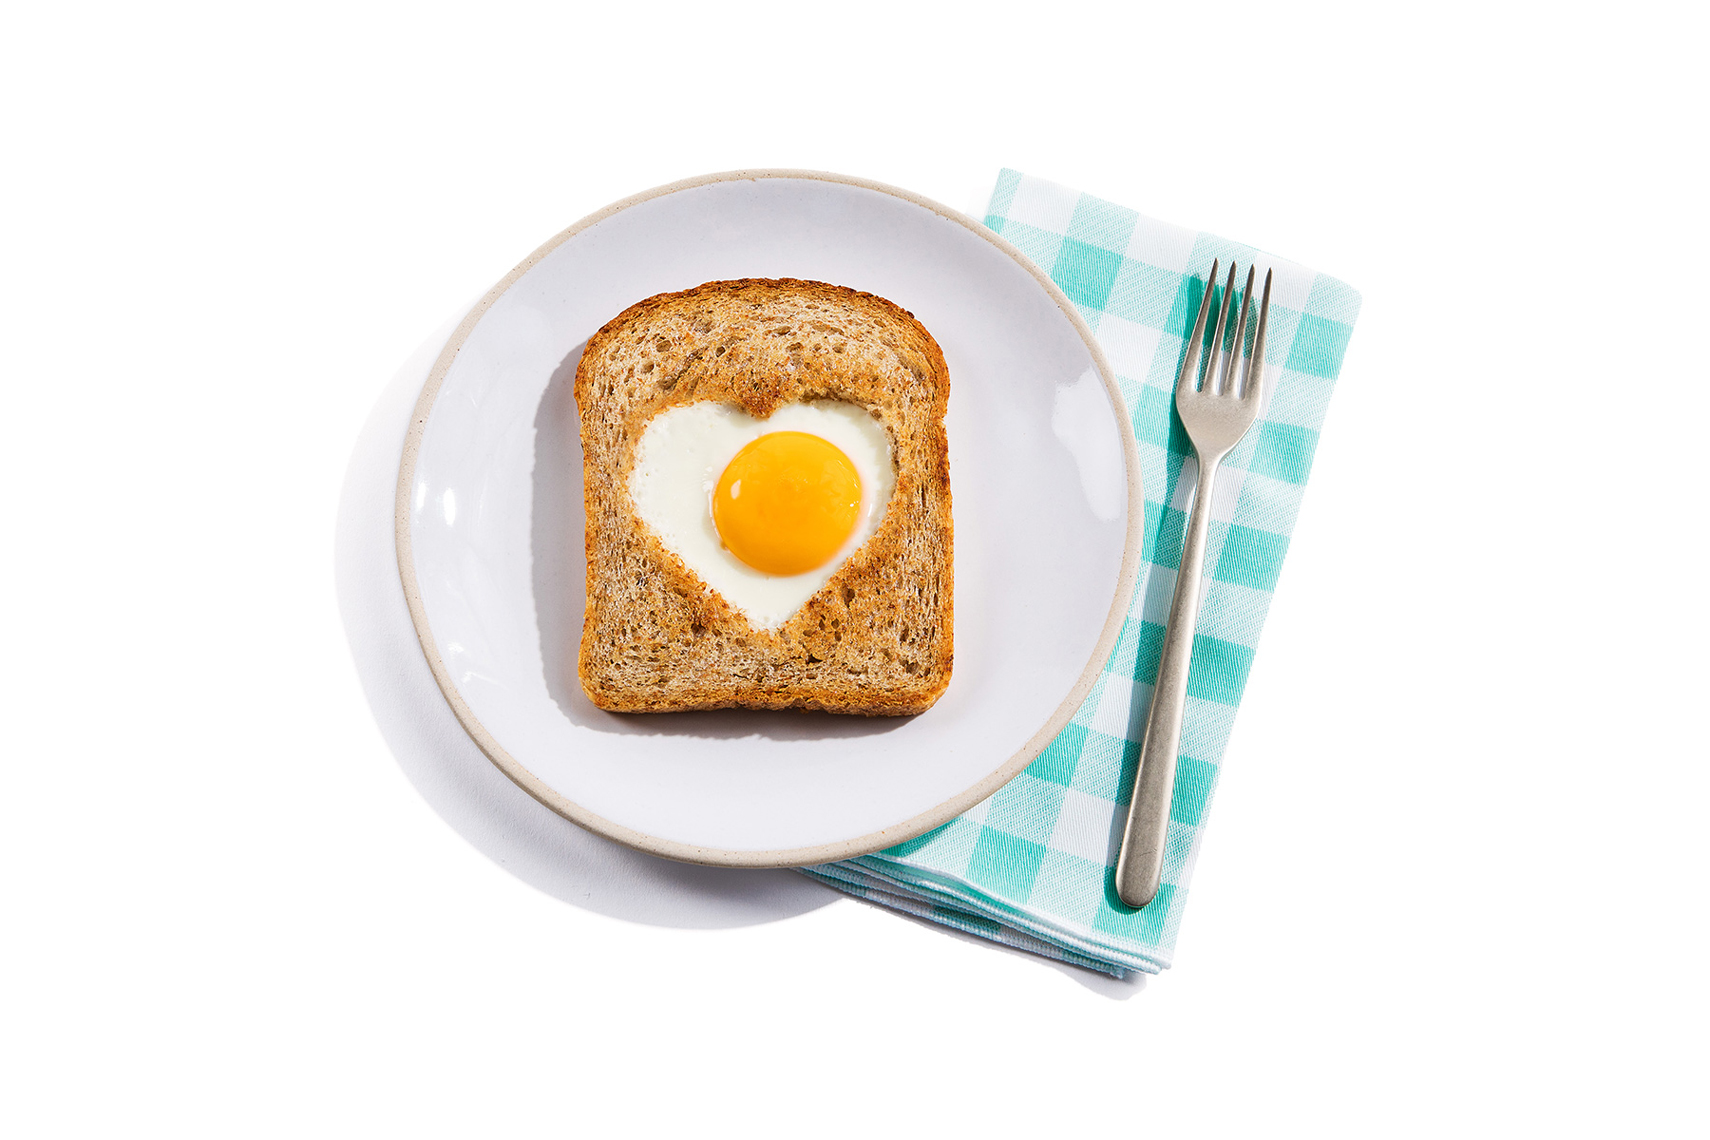 KTS_HBF-Egg-Dishes-Heart-Shaped-Egg